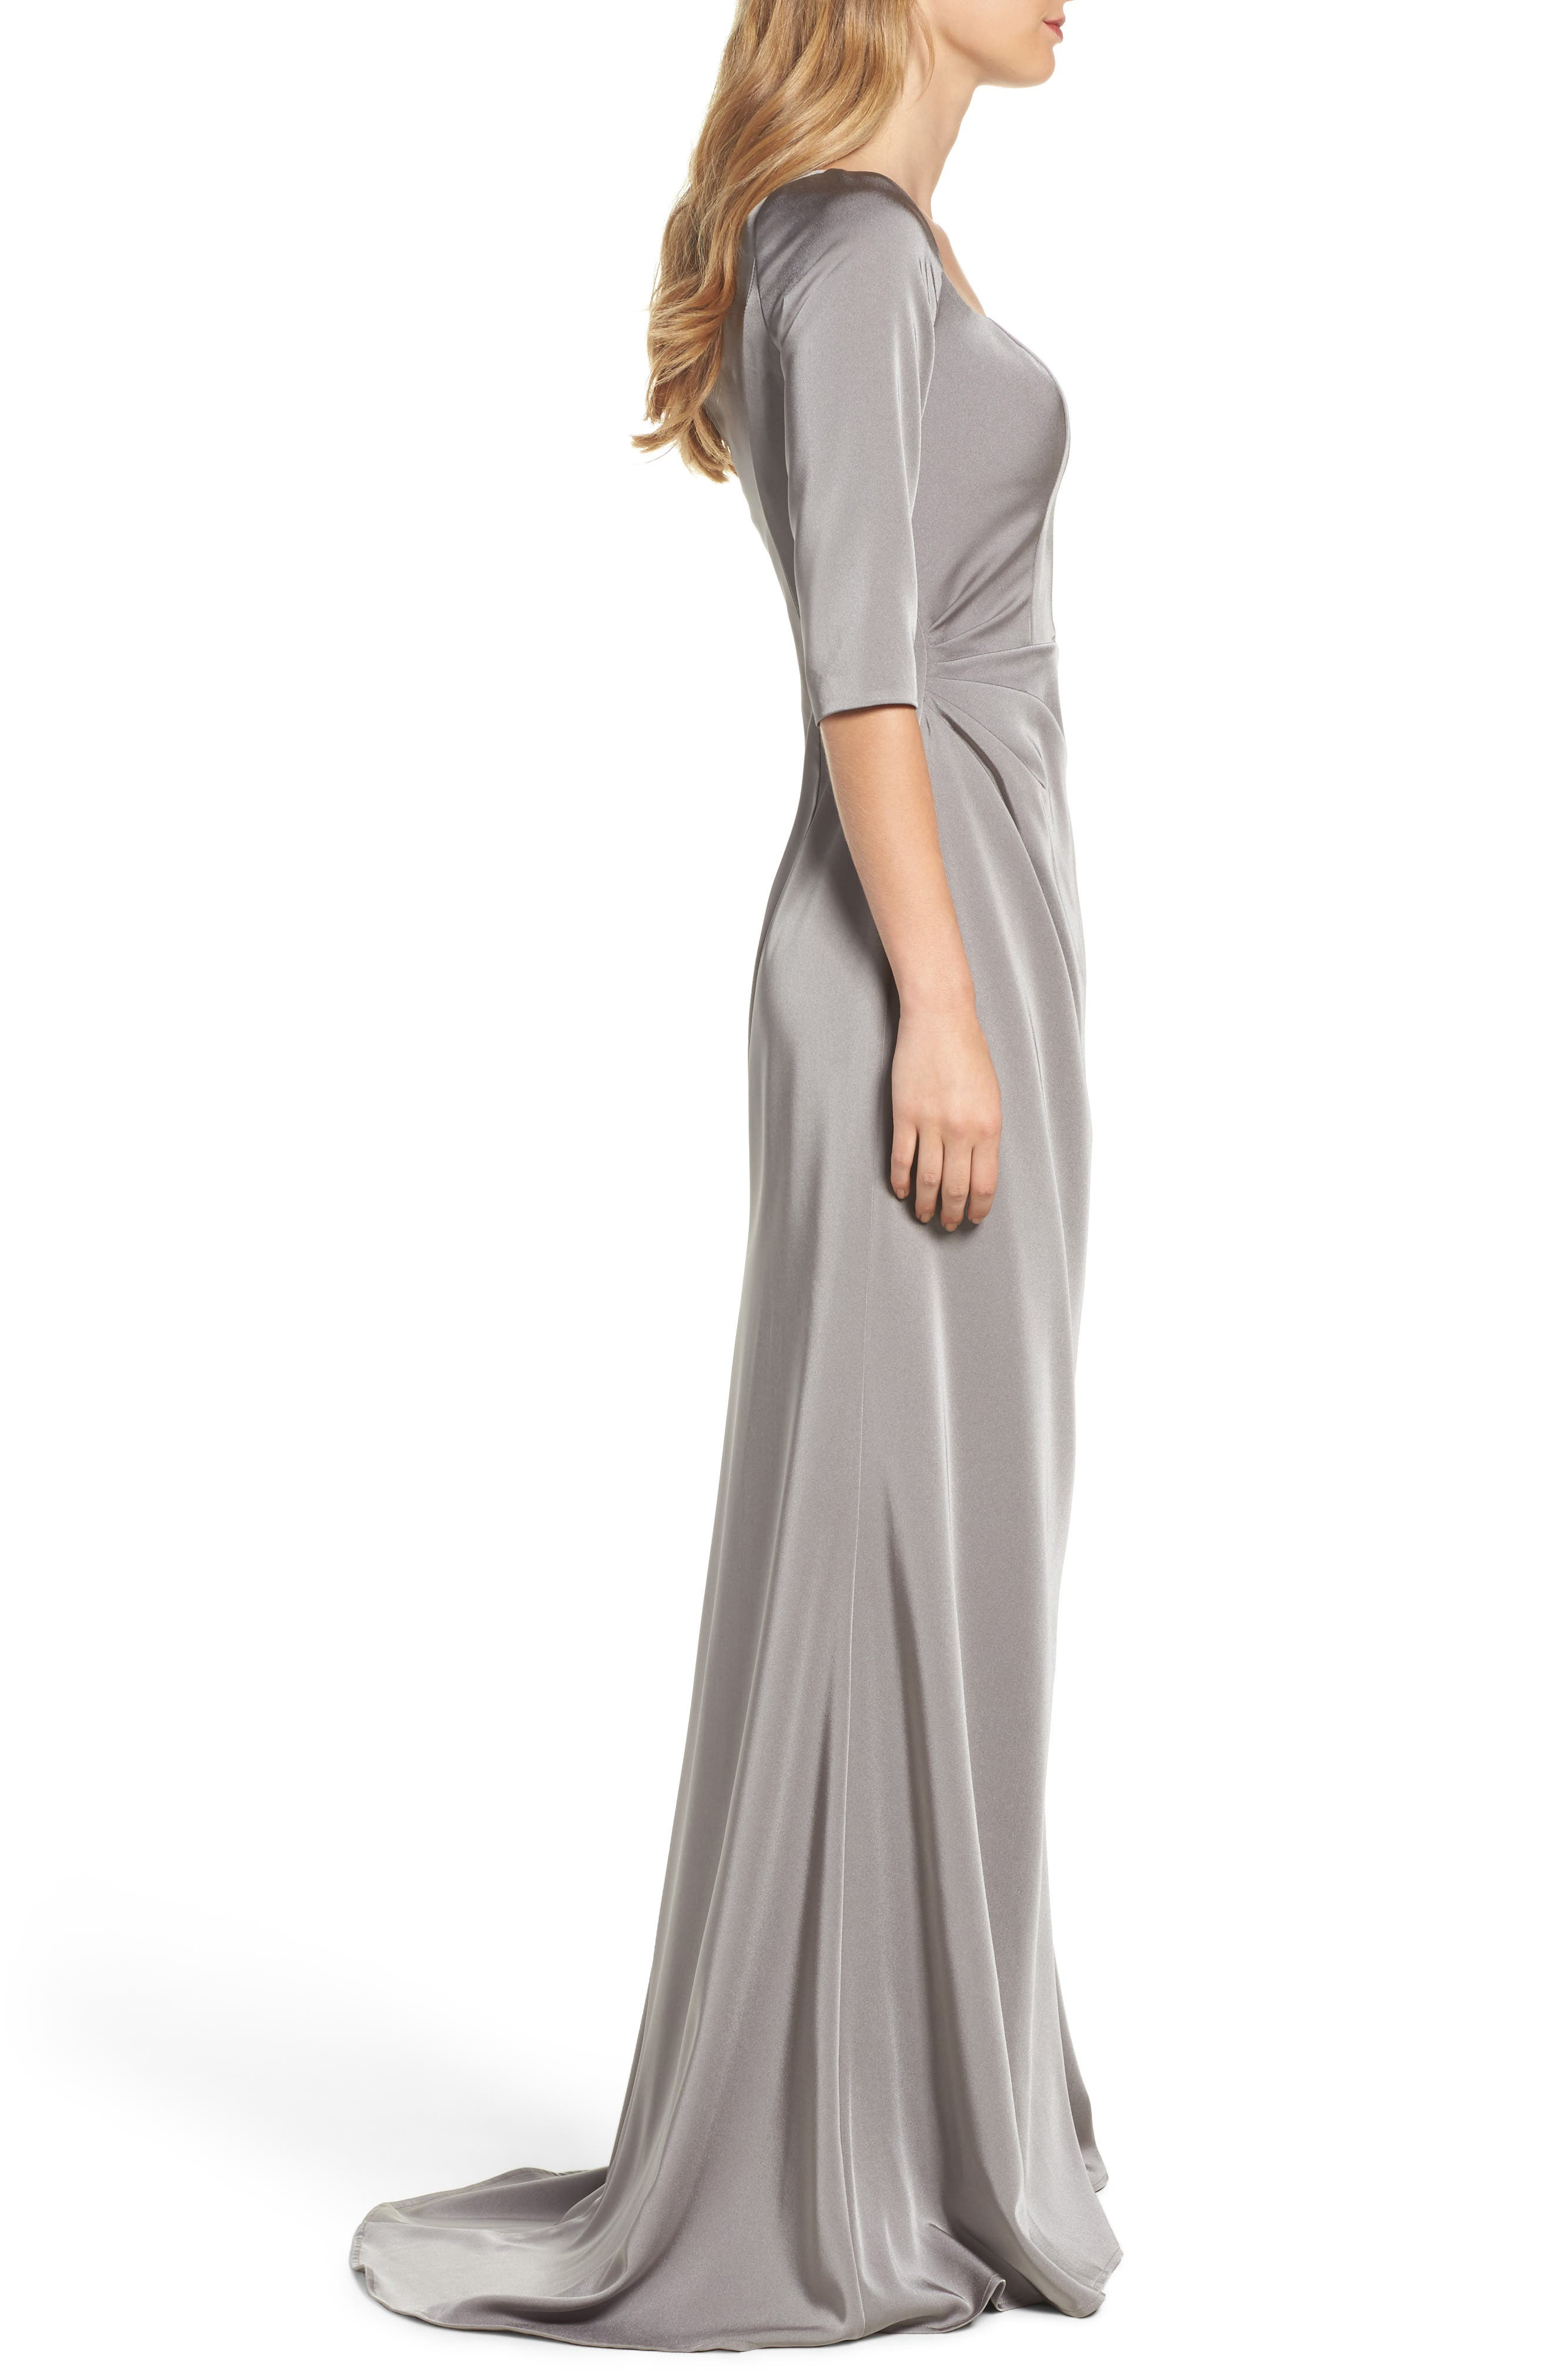 LA FEMME, Sweetheart Satin Gown, Alternate thumbnail 3, color, PLATINUM